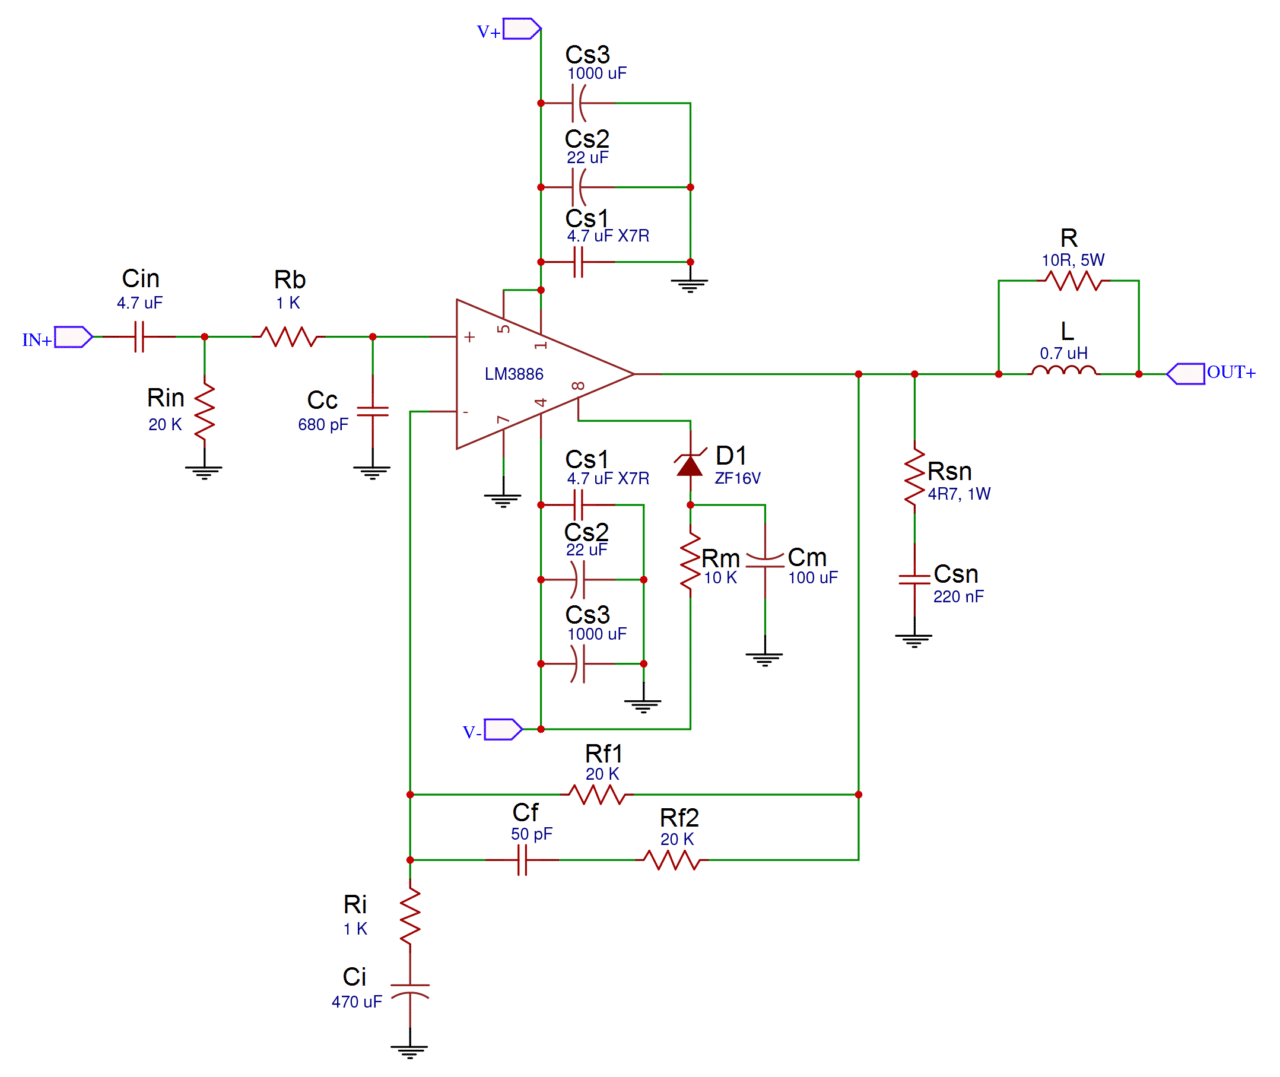 A Complete Guide To Design And Build Hi Fi Lm3886 Amplifier Telephone Ringer Circuits Electronics Tutorial Schematics Find Values For The Components In Circuit Ill Be Using Schematic Below Its Basically Same As One Datasheet